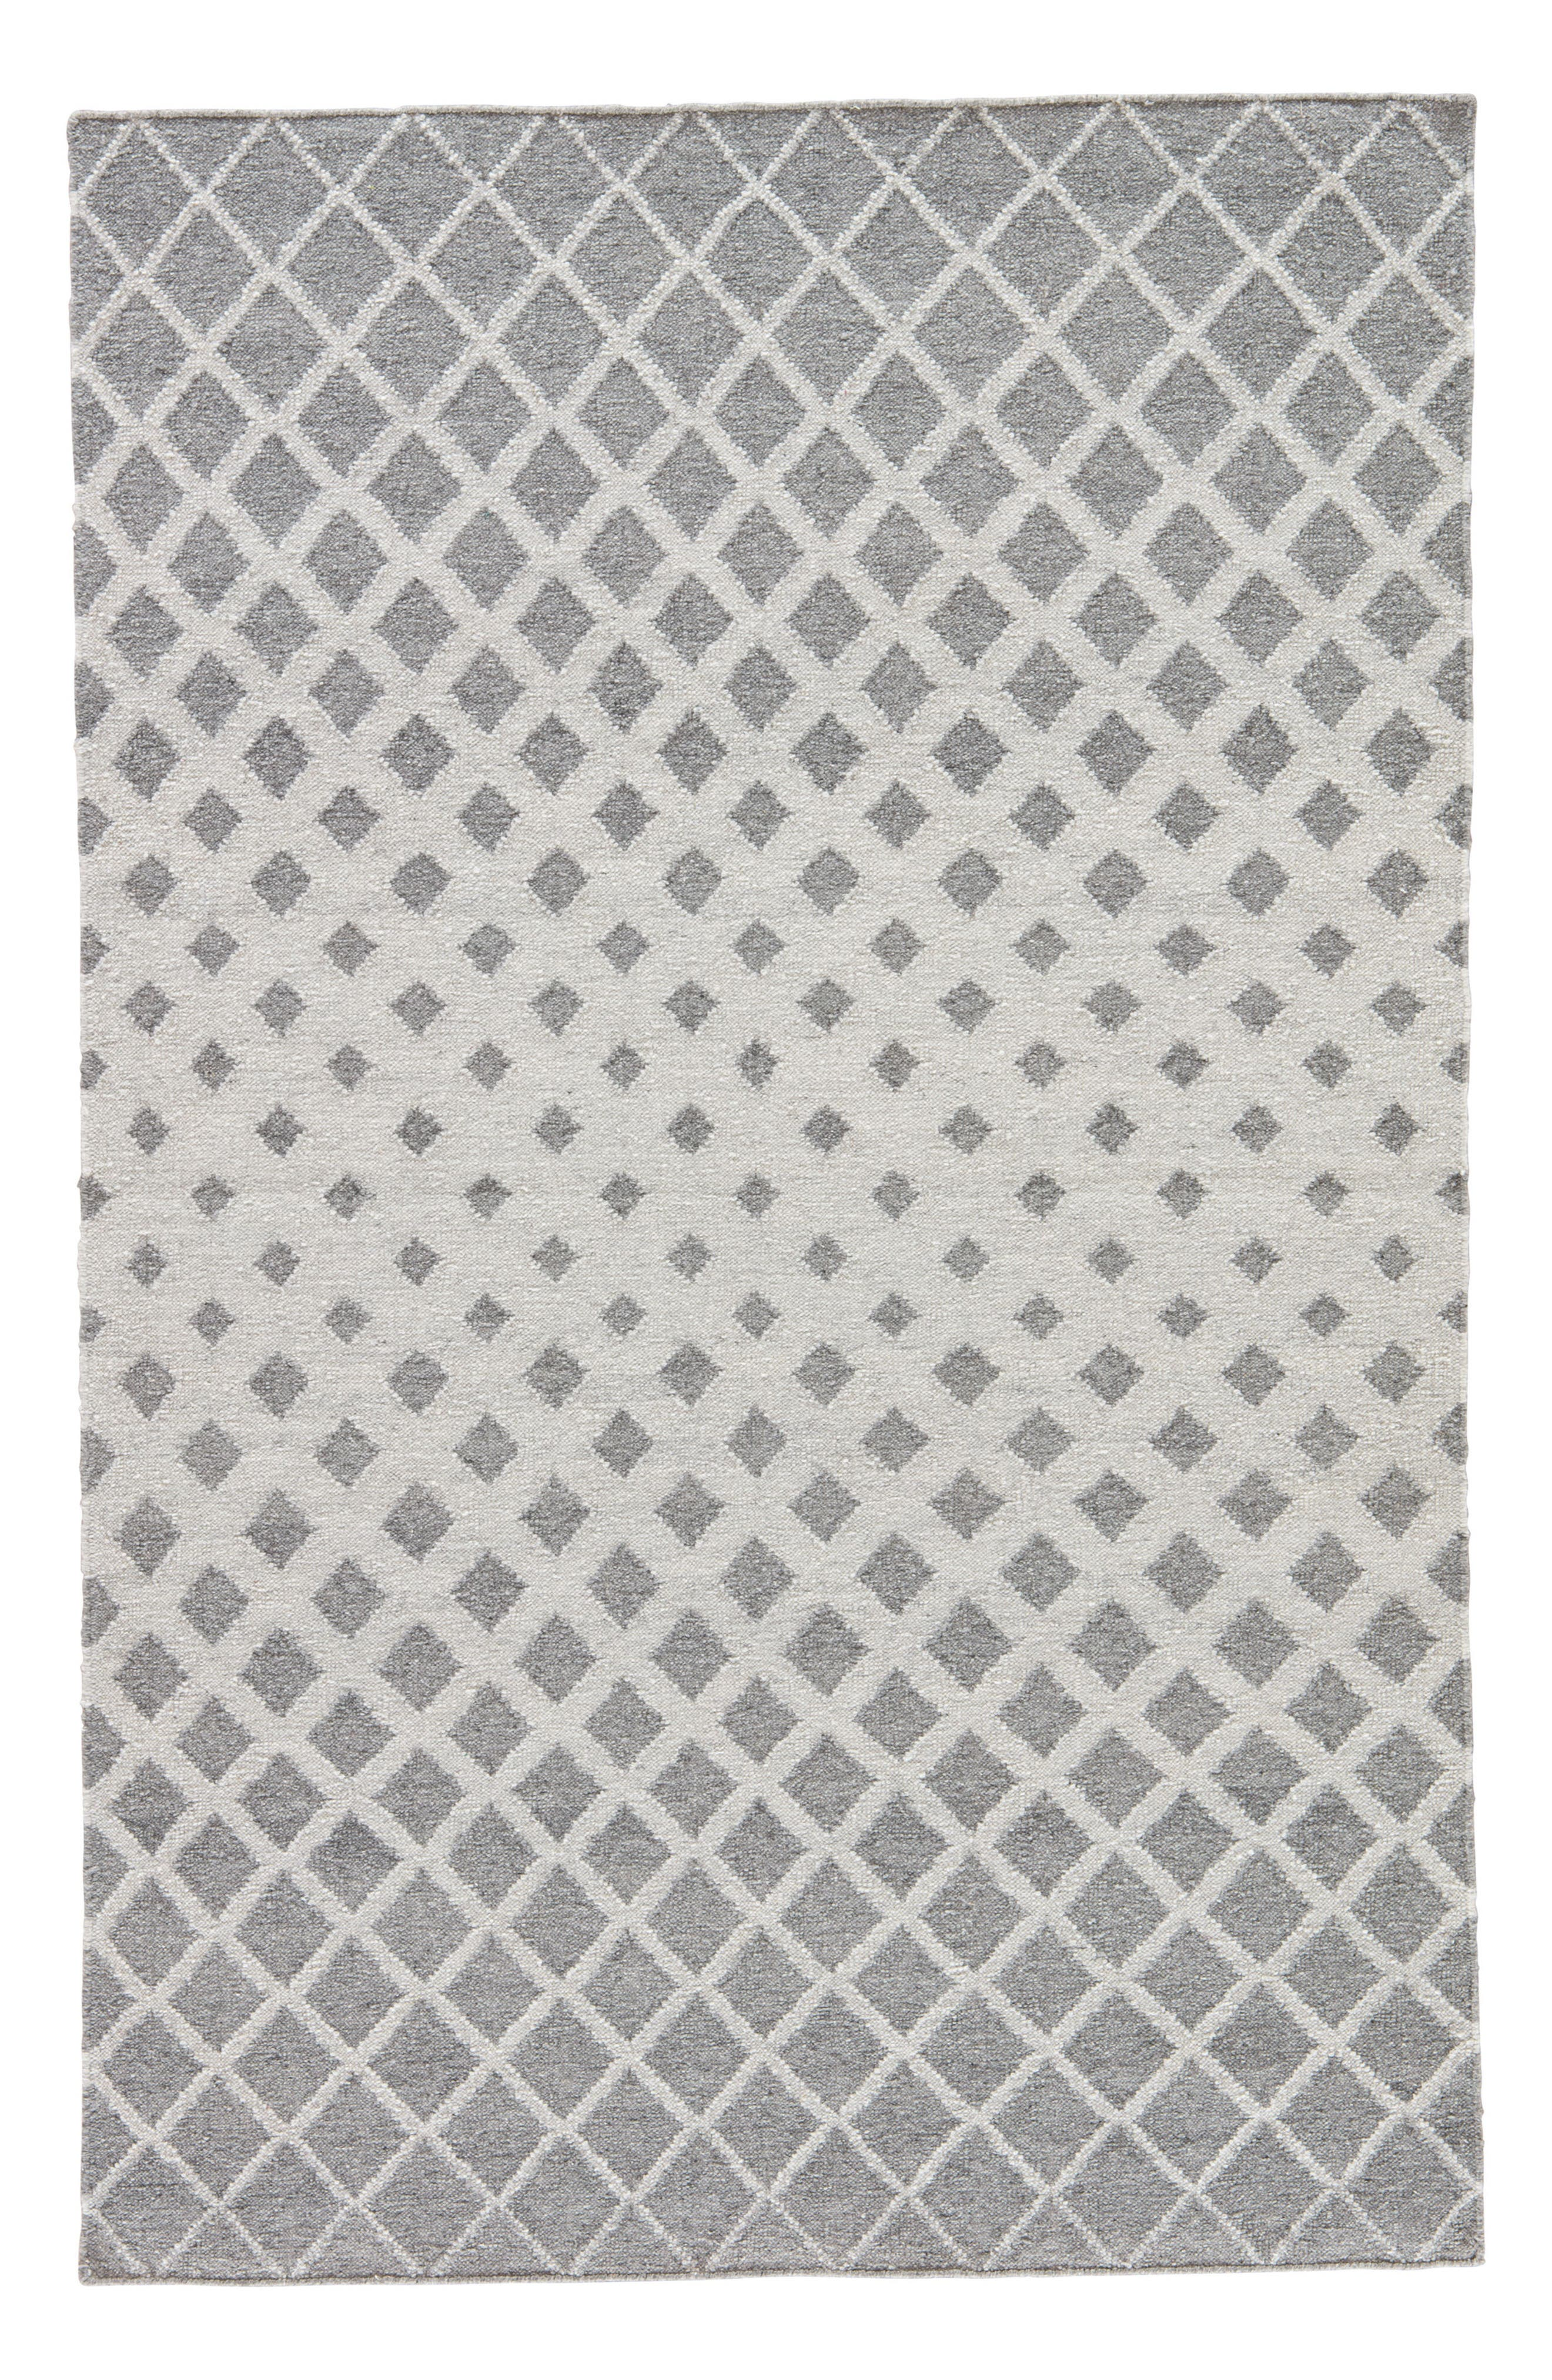 Pyramid Blocks Rug,                             Main thumbnail 1, color,                             099